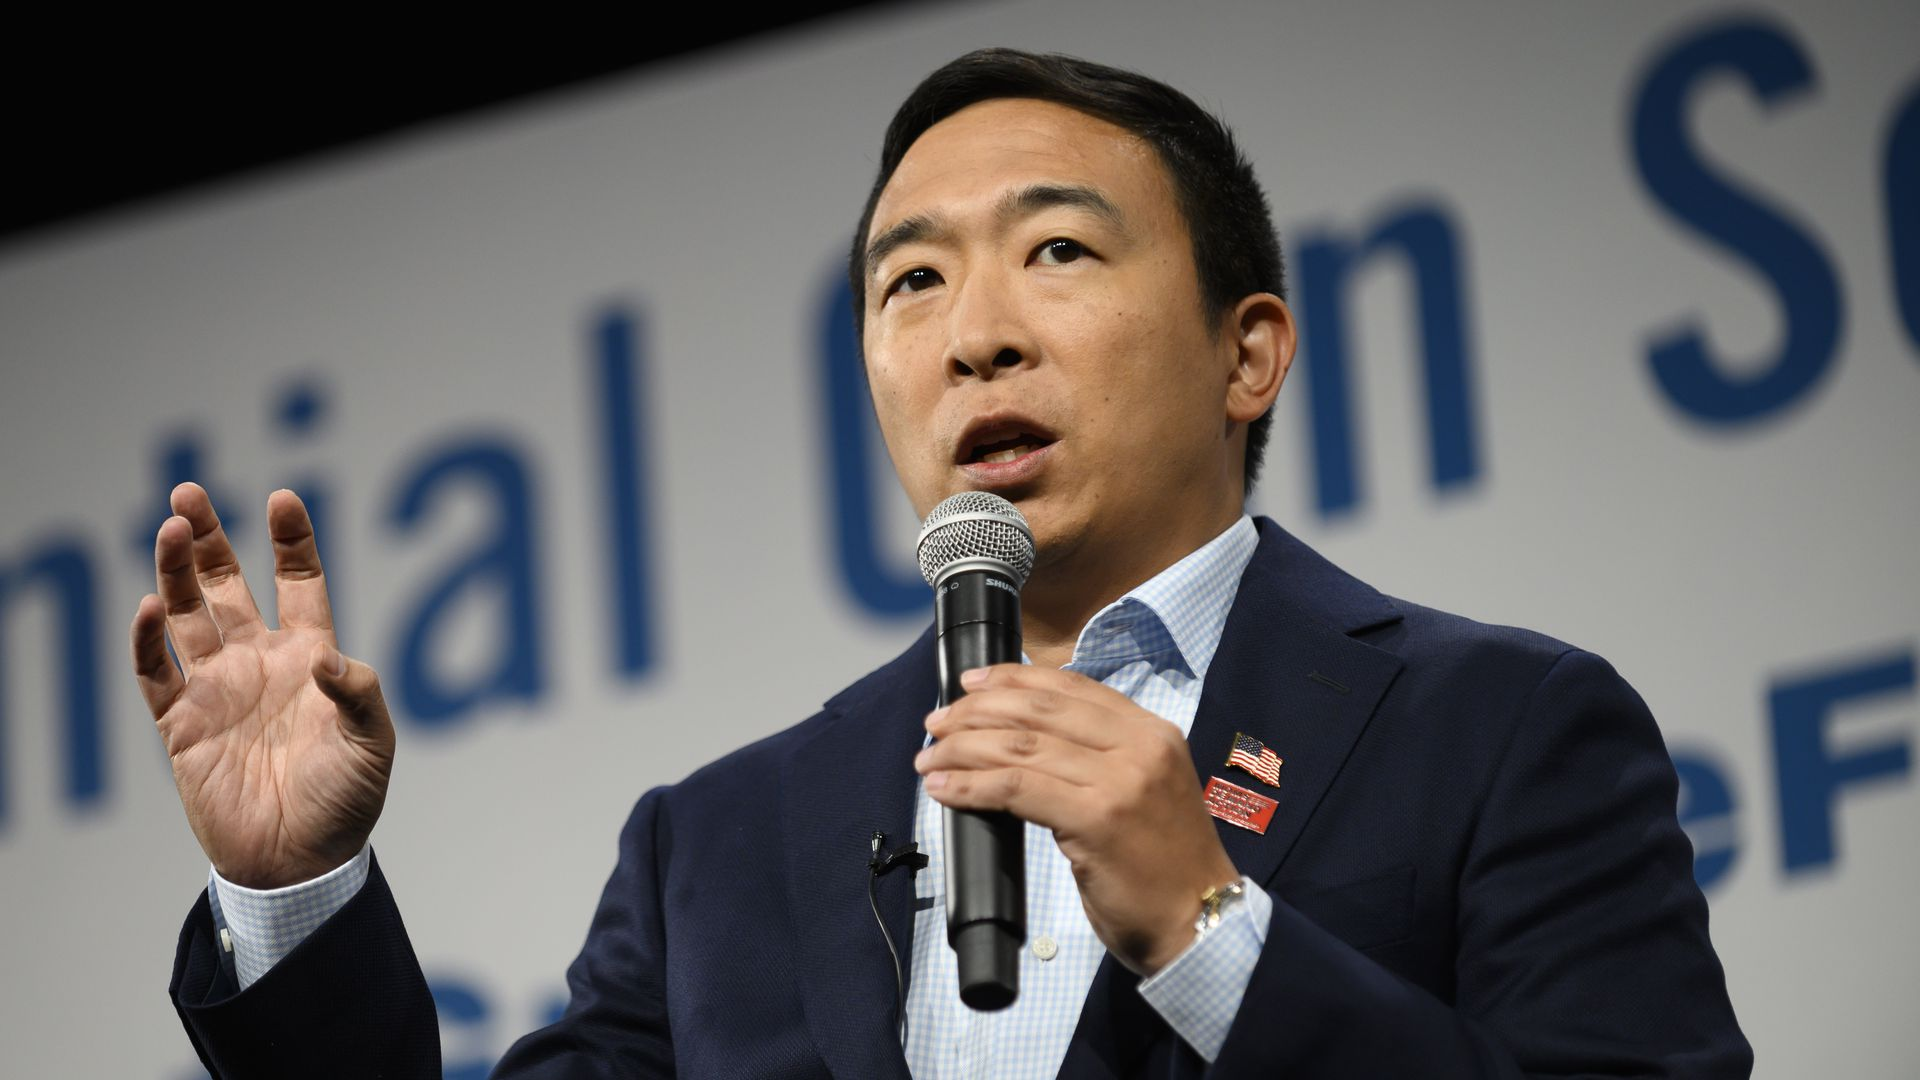 Democratic presidential candidate Andrew Yang speaks during a forum on gun safety at the Iowa Events Center on August 10